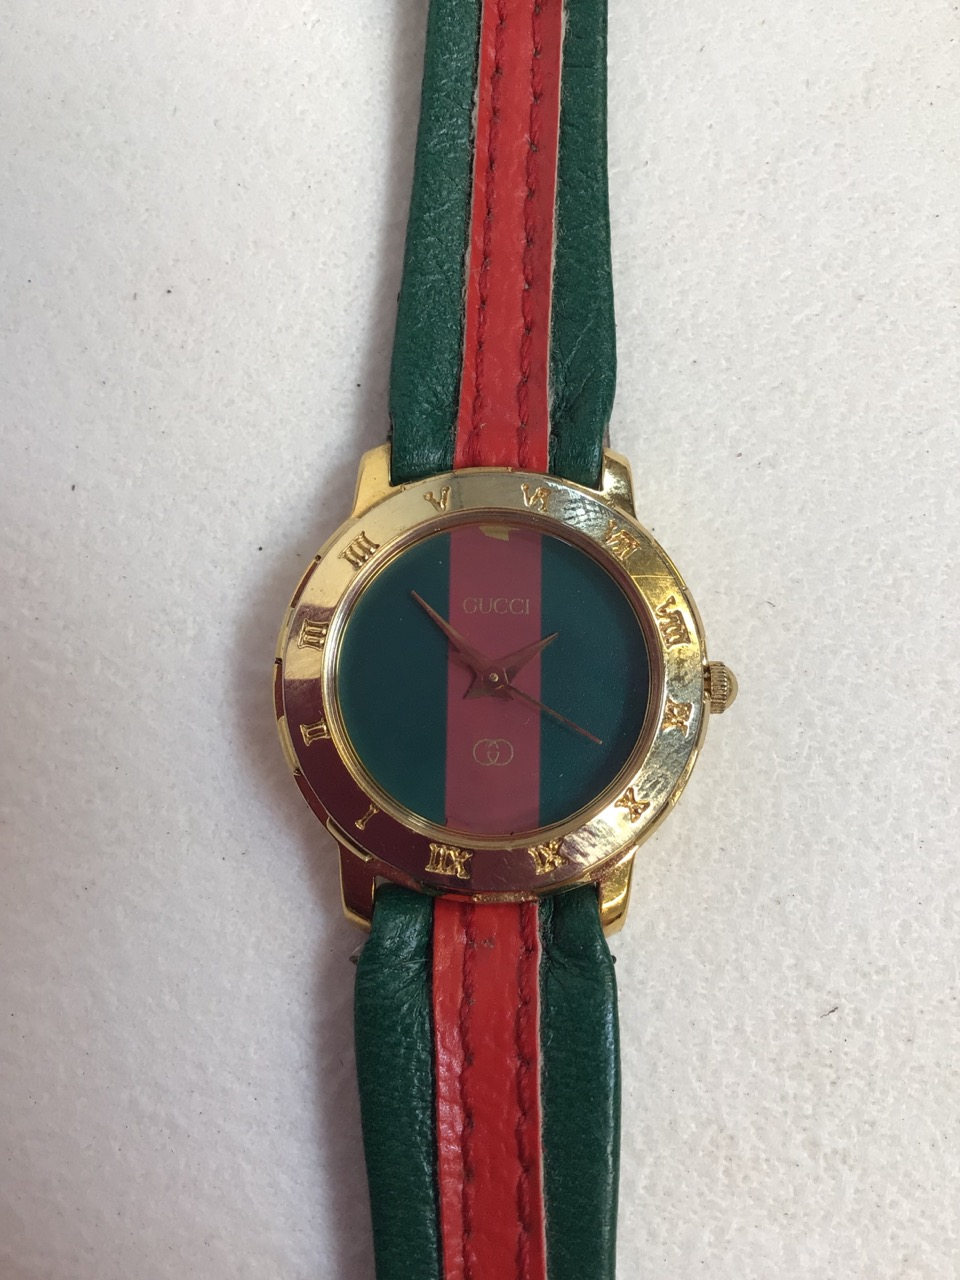 A ladies watch stamped Gucci.